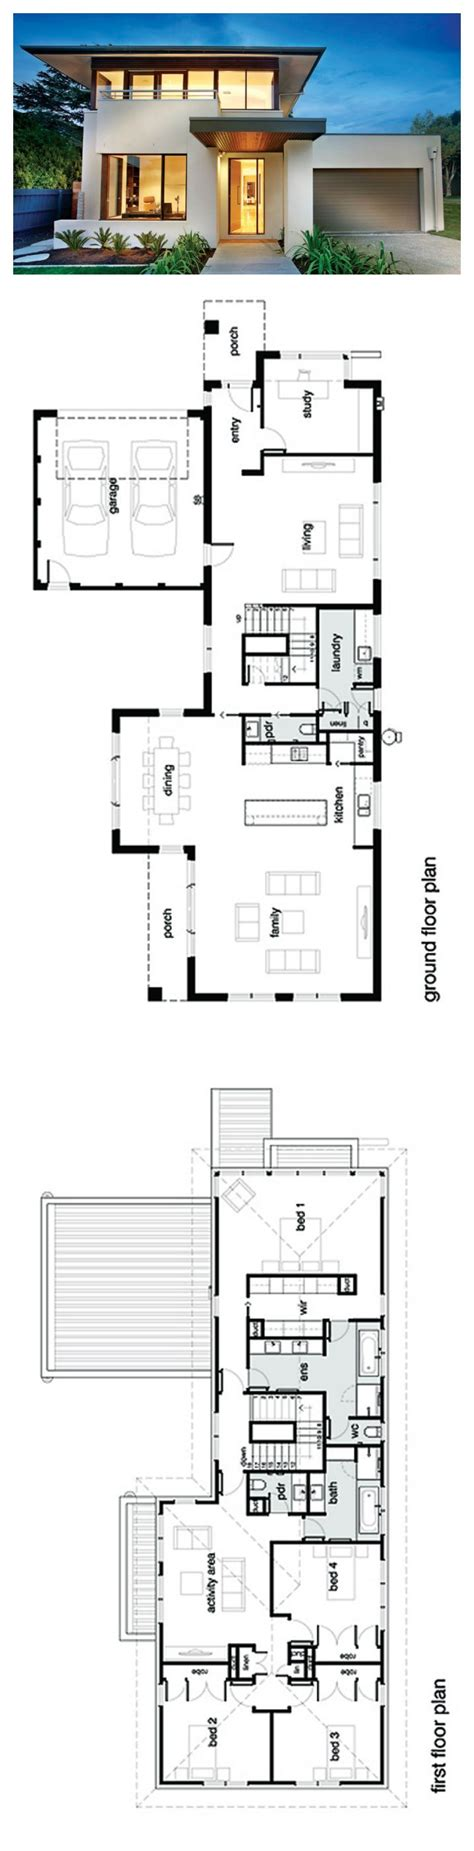 2 storey modern house designs and floor plans best 25 modern house plans ideas on modern